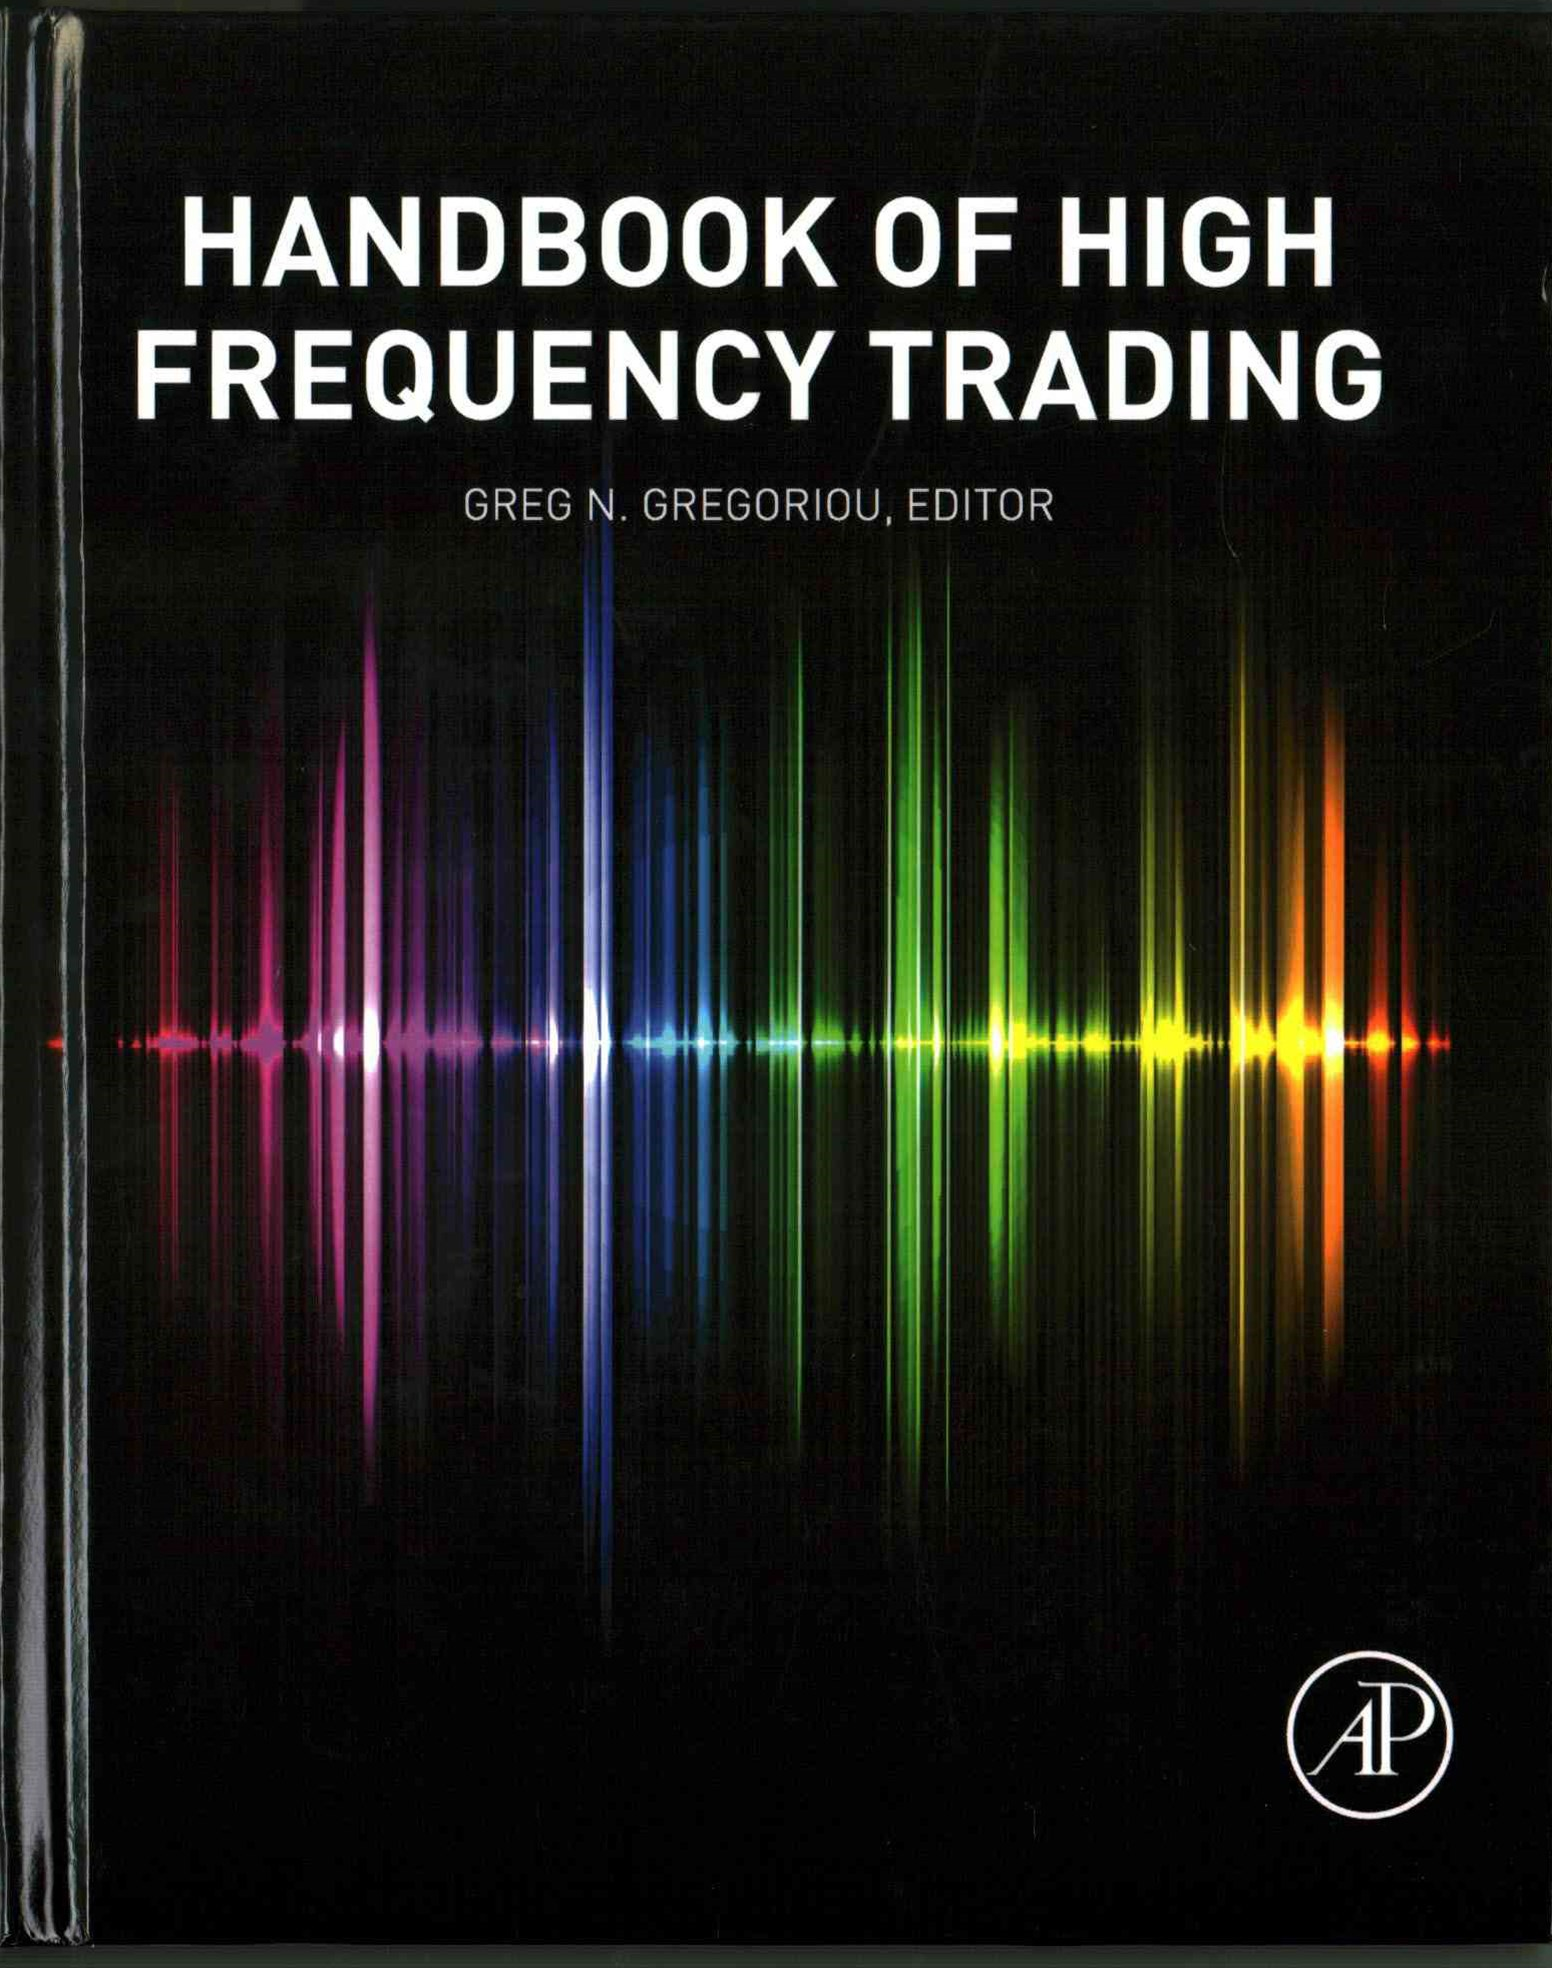 Handbook of High Frequency Trading